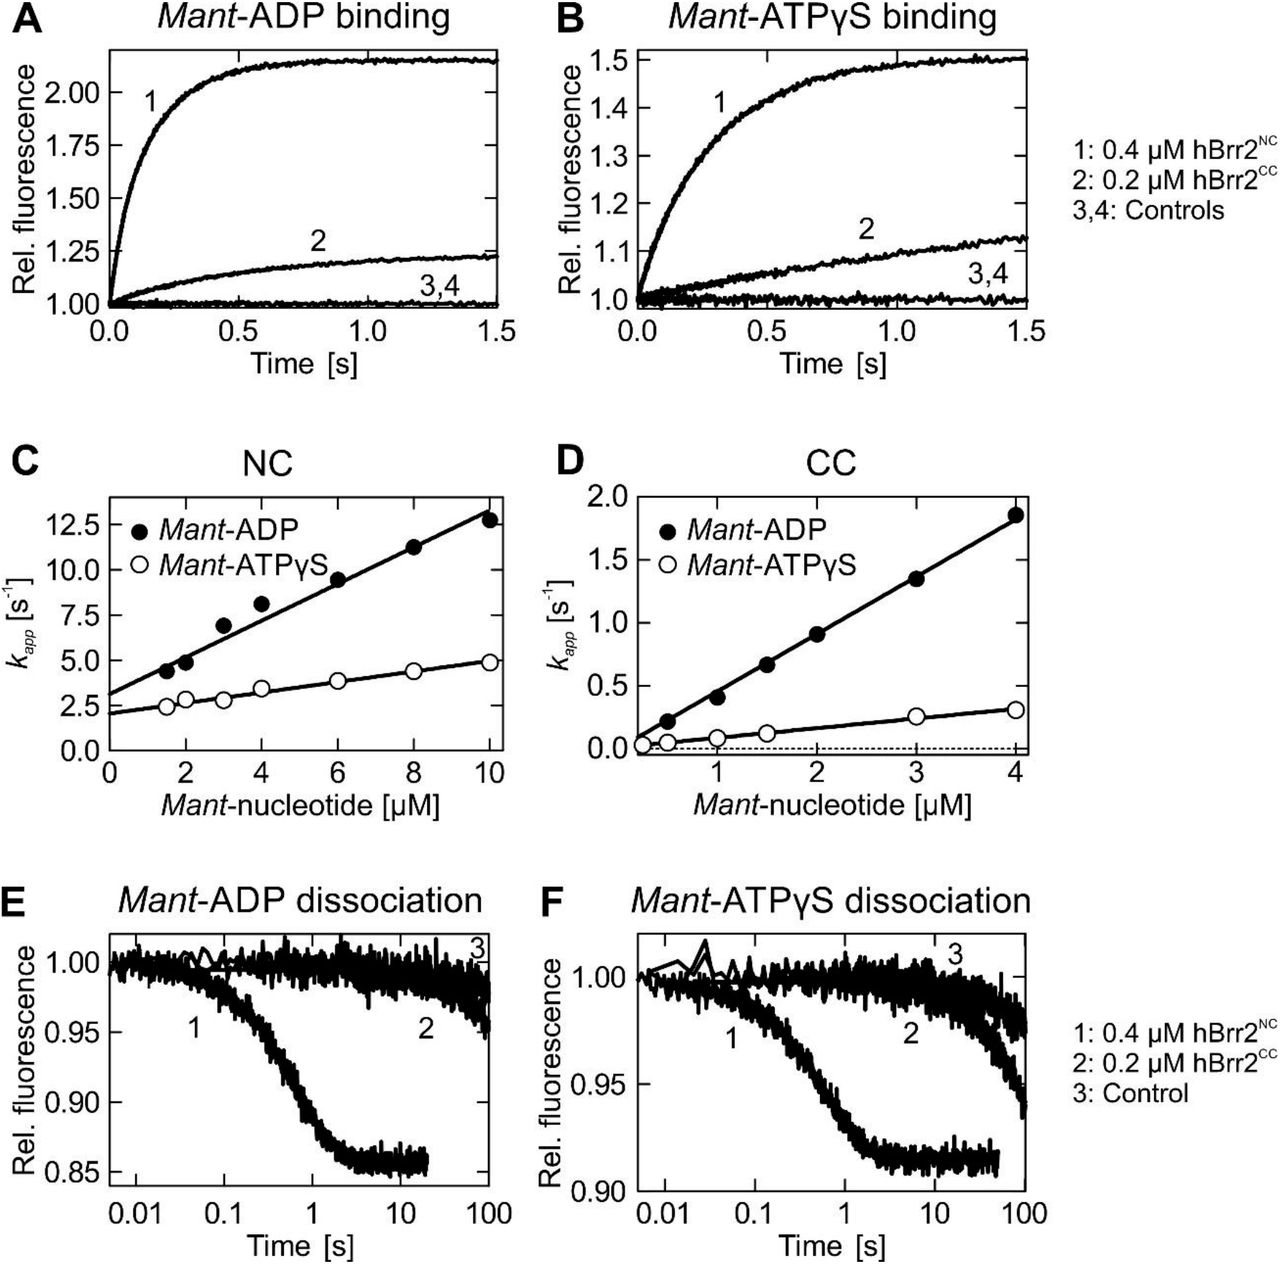 Kinetics of mant-ADP and mant -ATPγS interaction with hBrr2 NC and hBrr2CC. A and B . Time courses of 5 μM mant -ADP ( A ) or man t-ATPγS ( B ) binding to hBrr2 NC (1; 0.4 μM) and hBrr2CC (2; 0.2 μM) measured by FRET from Trp to mant . Controls correspond to binding experiments with unlabeled ADP or ATPγS (3 and 4). C and D . Individual nucleotide binding traces were fitted to single exponentials and the dependencies of the apparent rate constants on nucleotide concentration for hBrr2 NC ( C ) and hBrr2CC ( D ) were fitted by a linear equation, k app = k 1 [mant-nucleotide]+ k- 1 , in which k 1 is derived from the slope and k- 1 from the Y-axis intercept. Closed circles, mant -ADP; open circles, mant -ATPγS. Values represent means ± SD of at least three independent measurements. E and F . Dissociation of 5 μM mant -ADP ( E ) or mant -ATPγS ( F ) from hBrr2 NC (1; 0.4 μM hBrr2 NC ) and hBrr2 CC (2; 0.2 μM) in the presence of the respective unlabeled nucleotide in excess (100 μM). Control experiments (3) were carried out in the absence of unlabeled nucleotide (curves shown are for hBrr2 CC ).